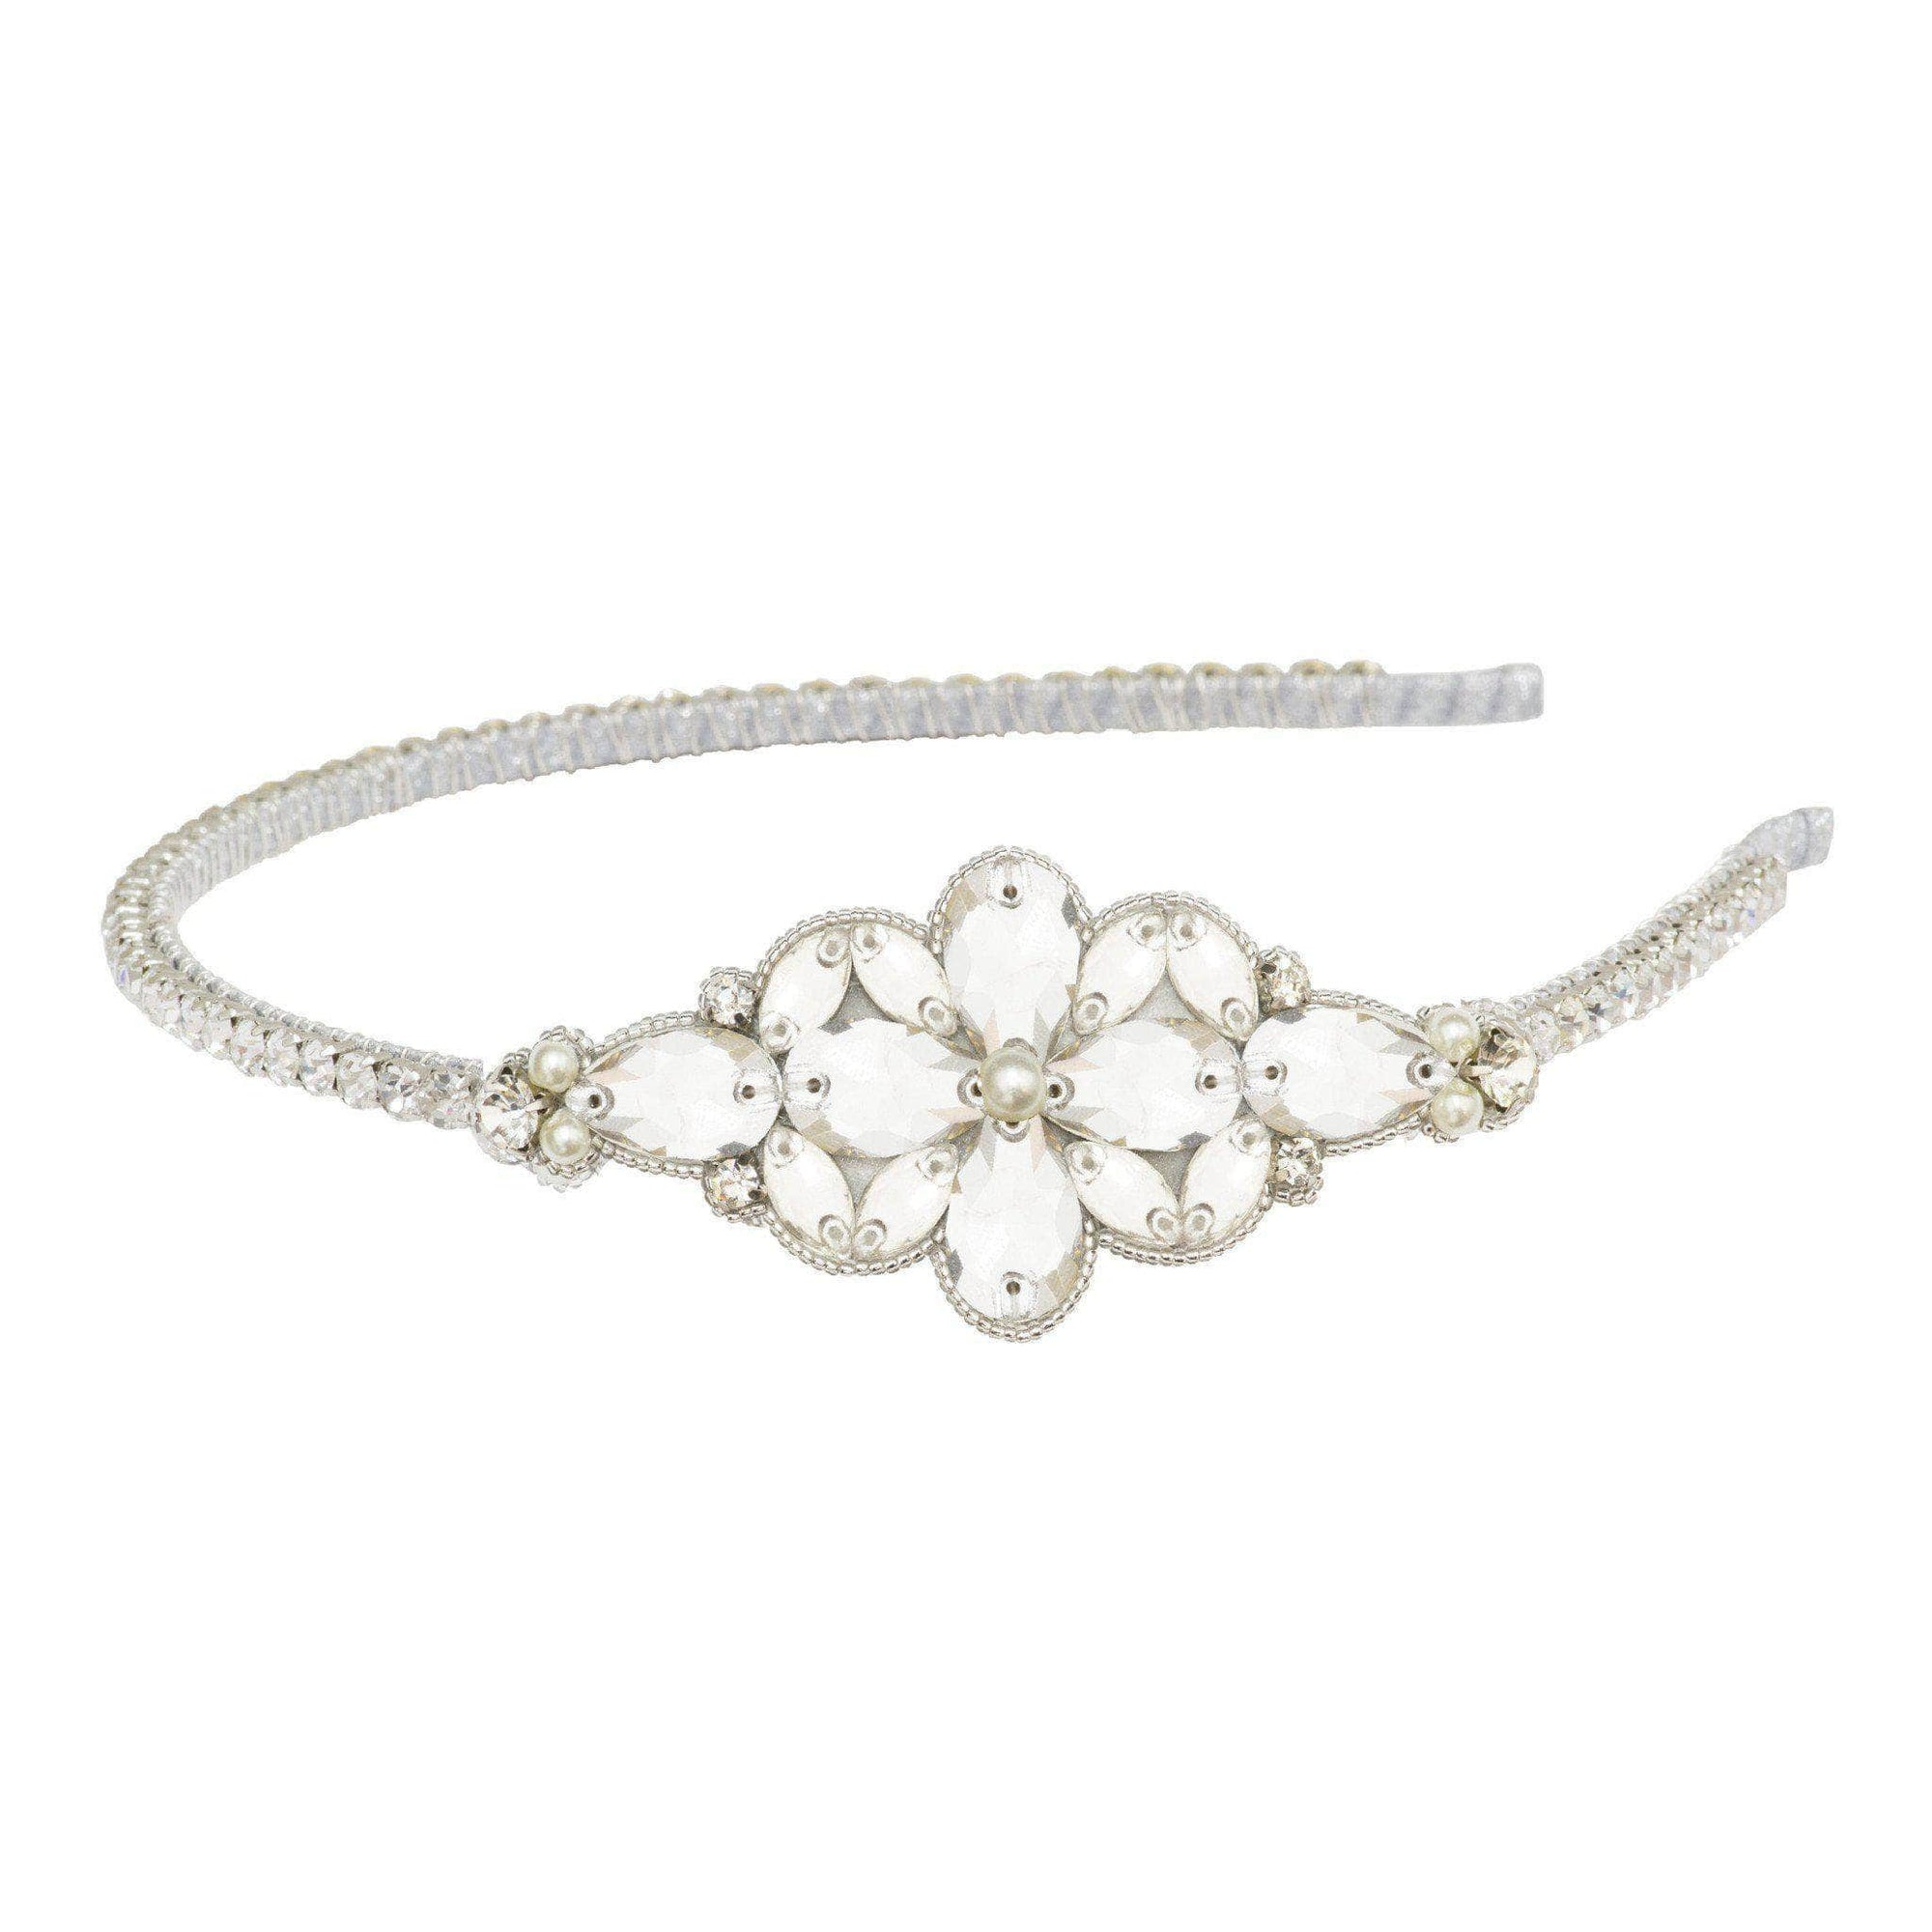 Wedding Headband Silver / Silver sparkle (as in images) Statement silver wedding headband with crystals and pearls - 'Tulla'